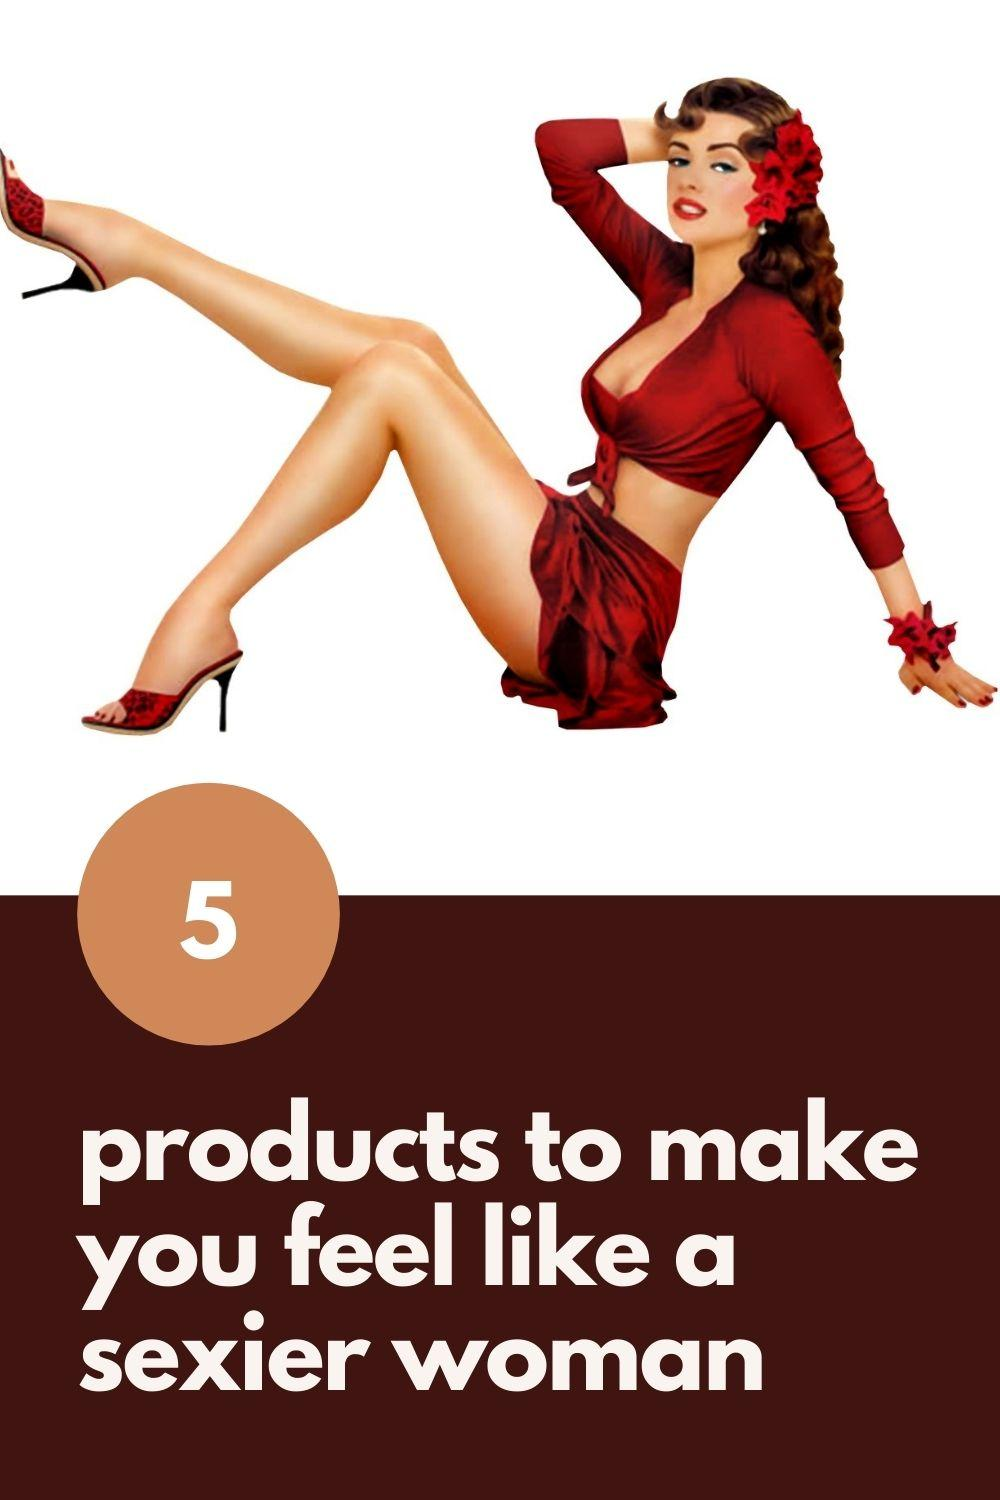 5 products to make you feel like a sexier woman graphic